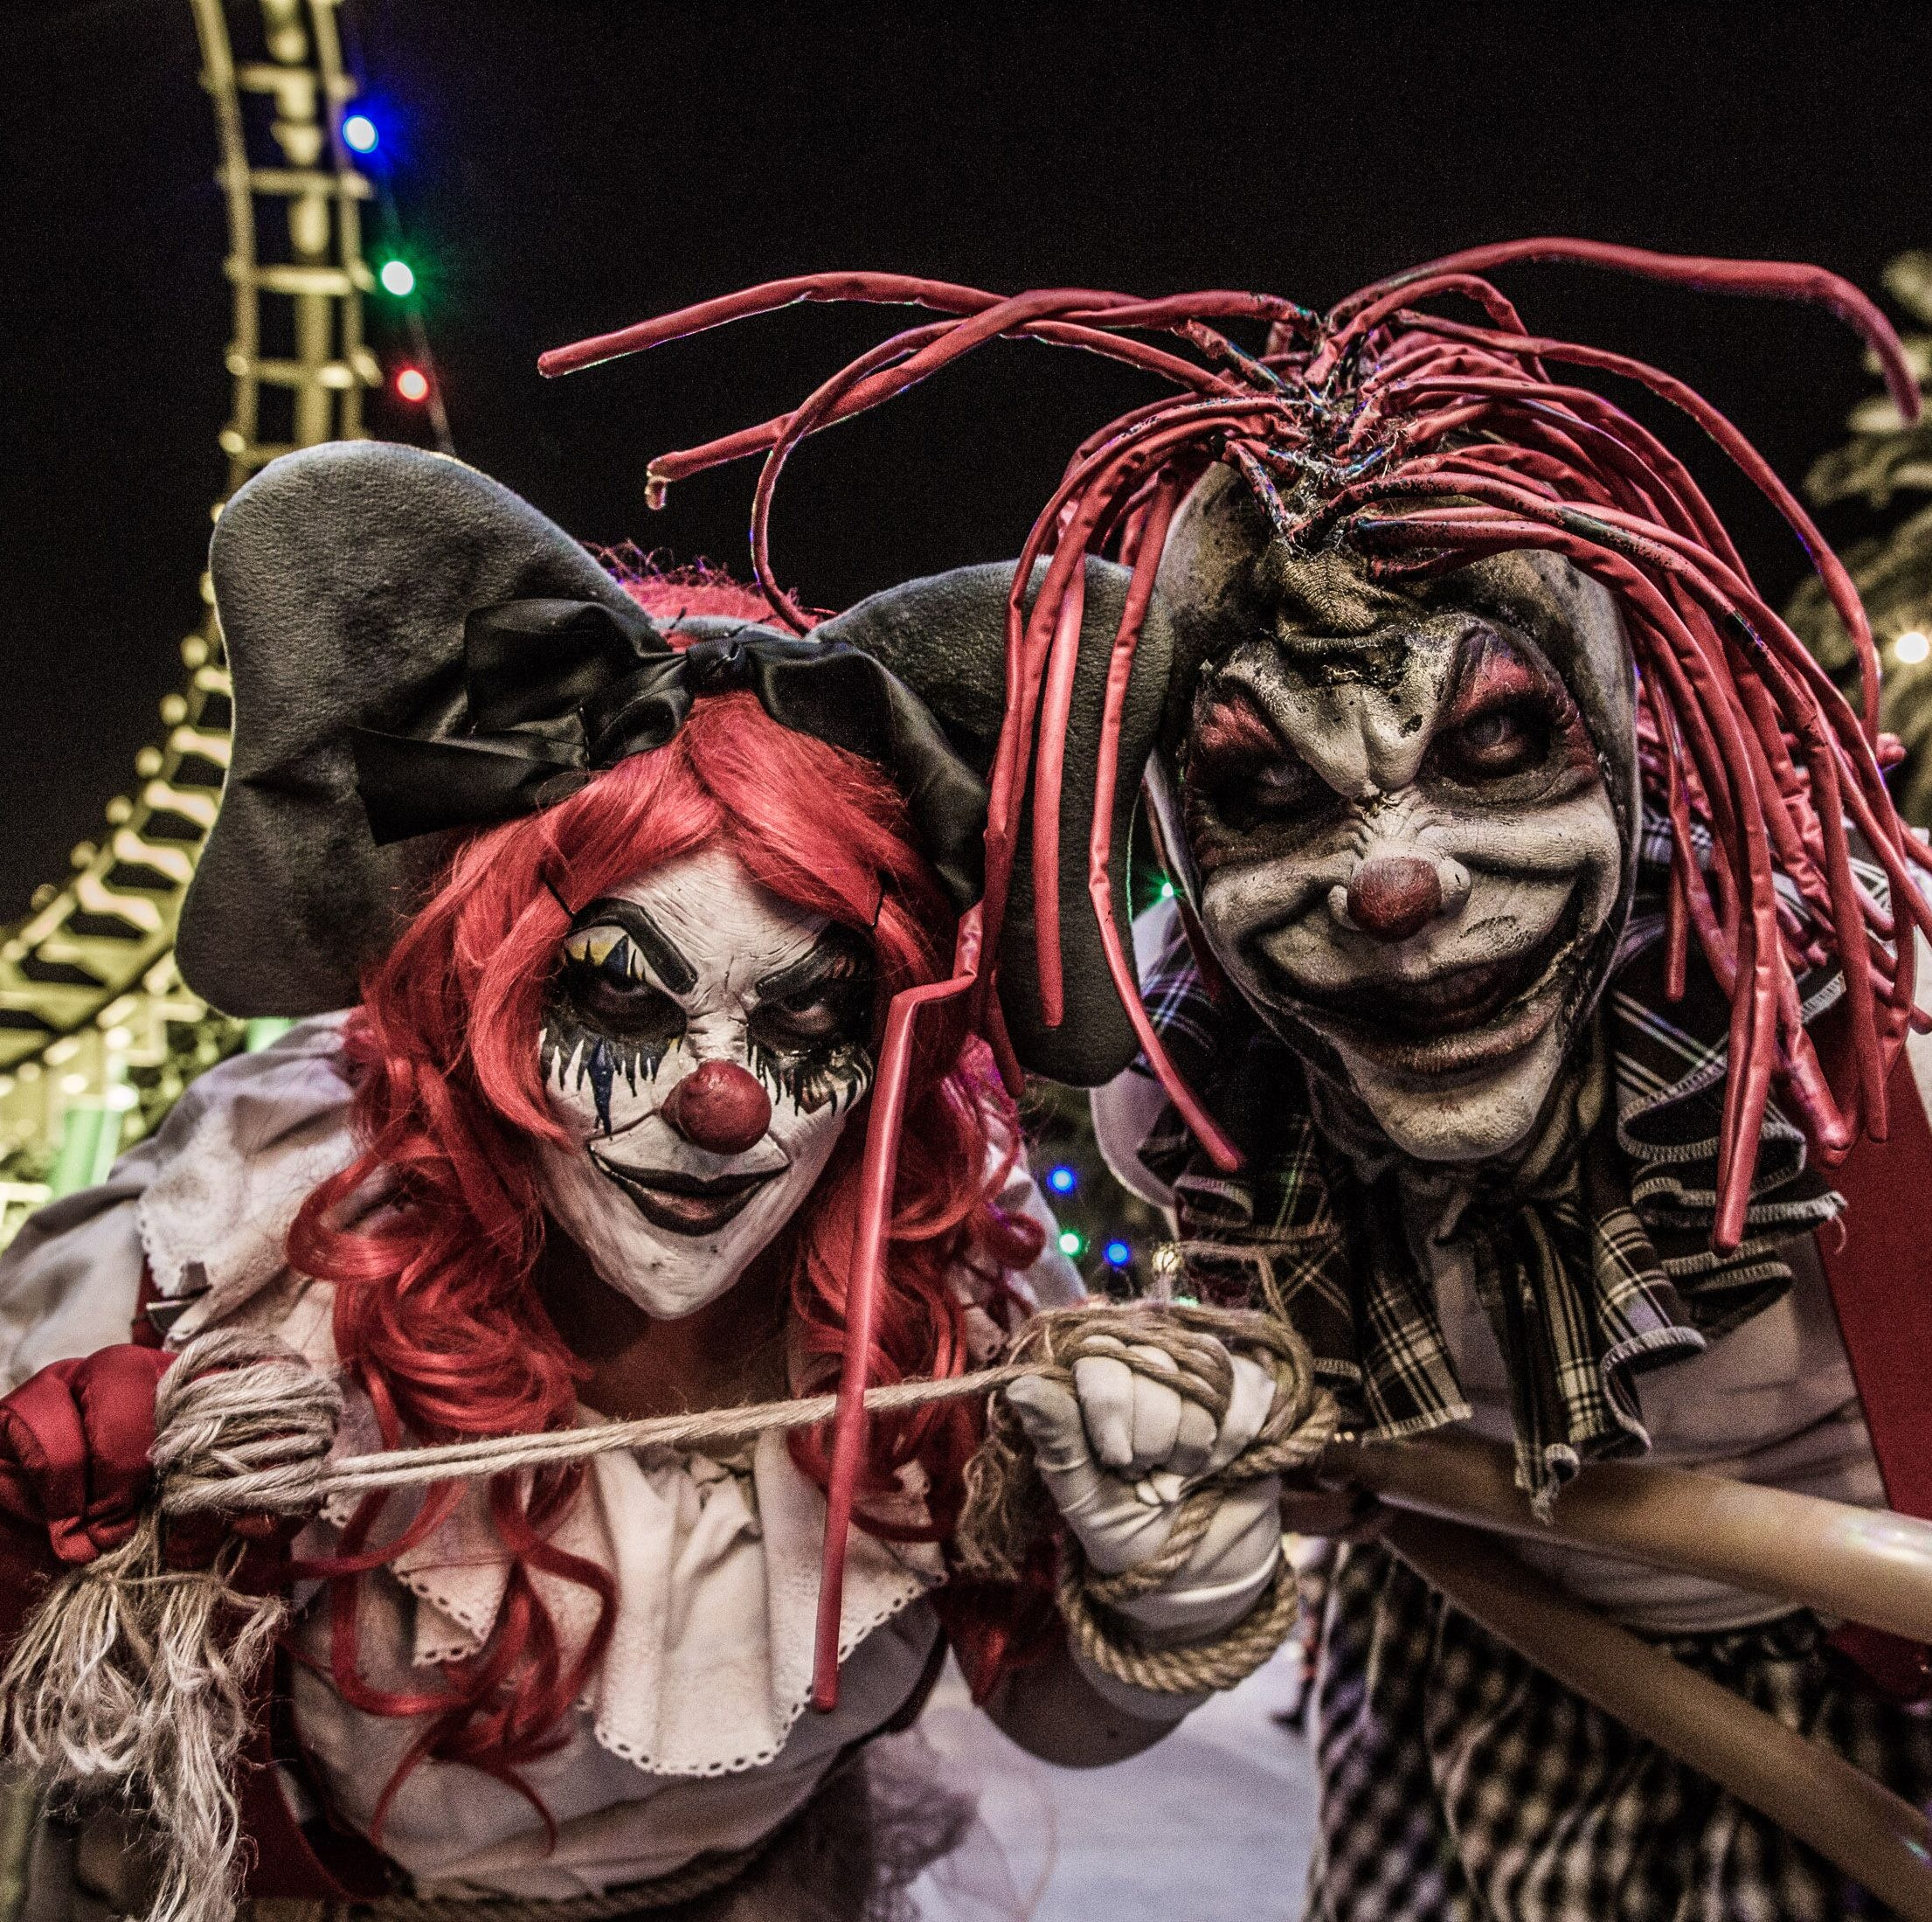 Southern California theme parks aren't holding back for Halloween